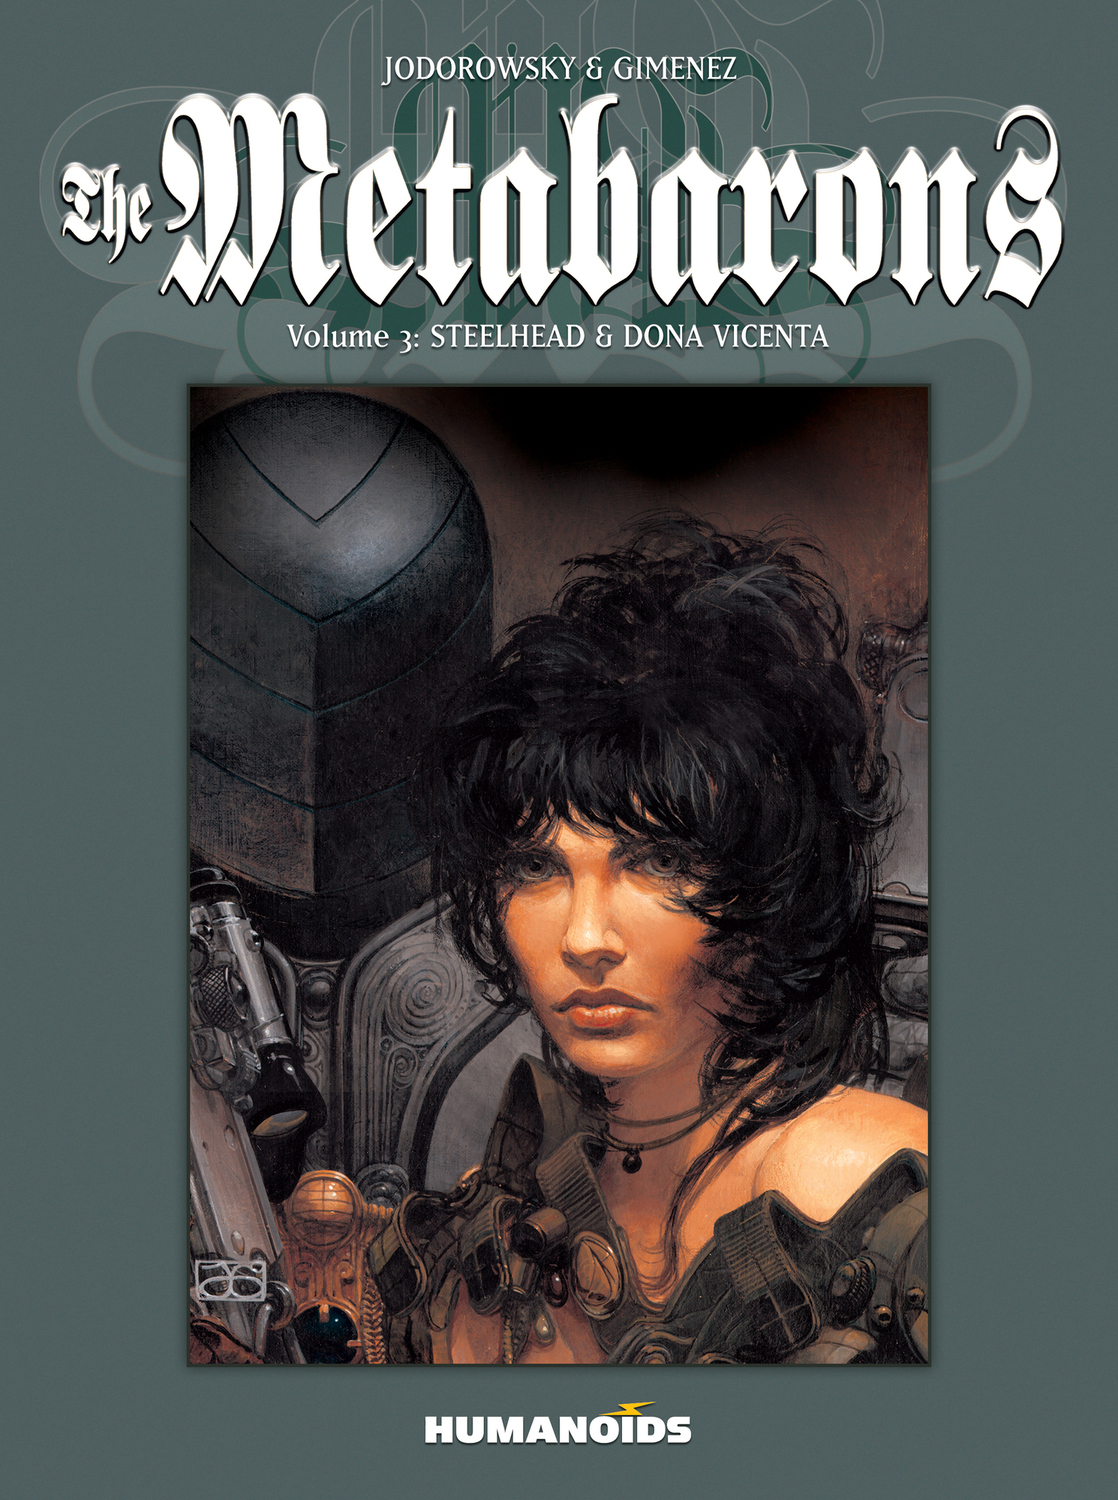 The Metabarons #3 : Steelhead & Dona Vicenta - Softcover Trade